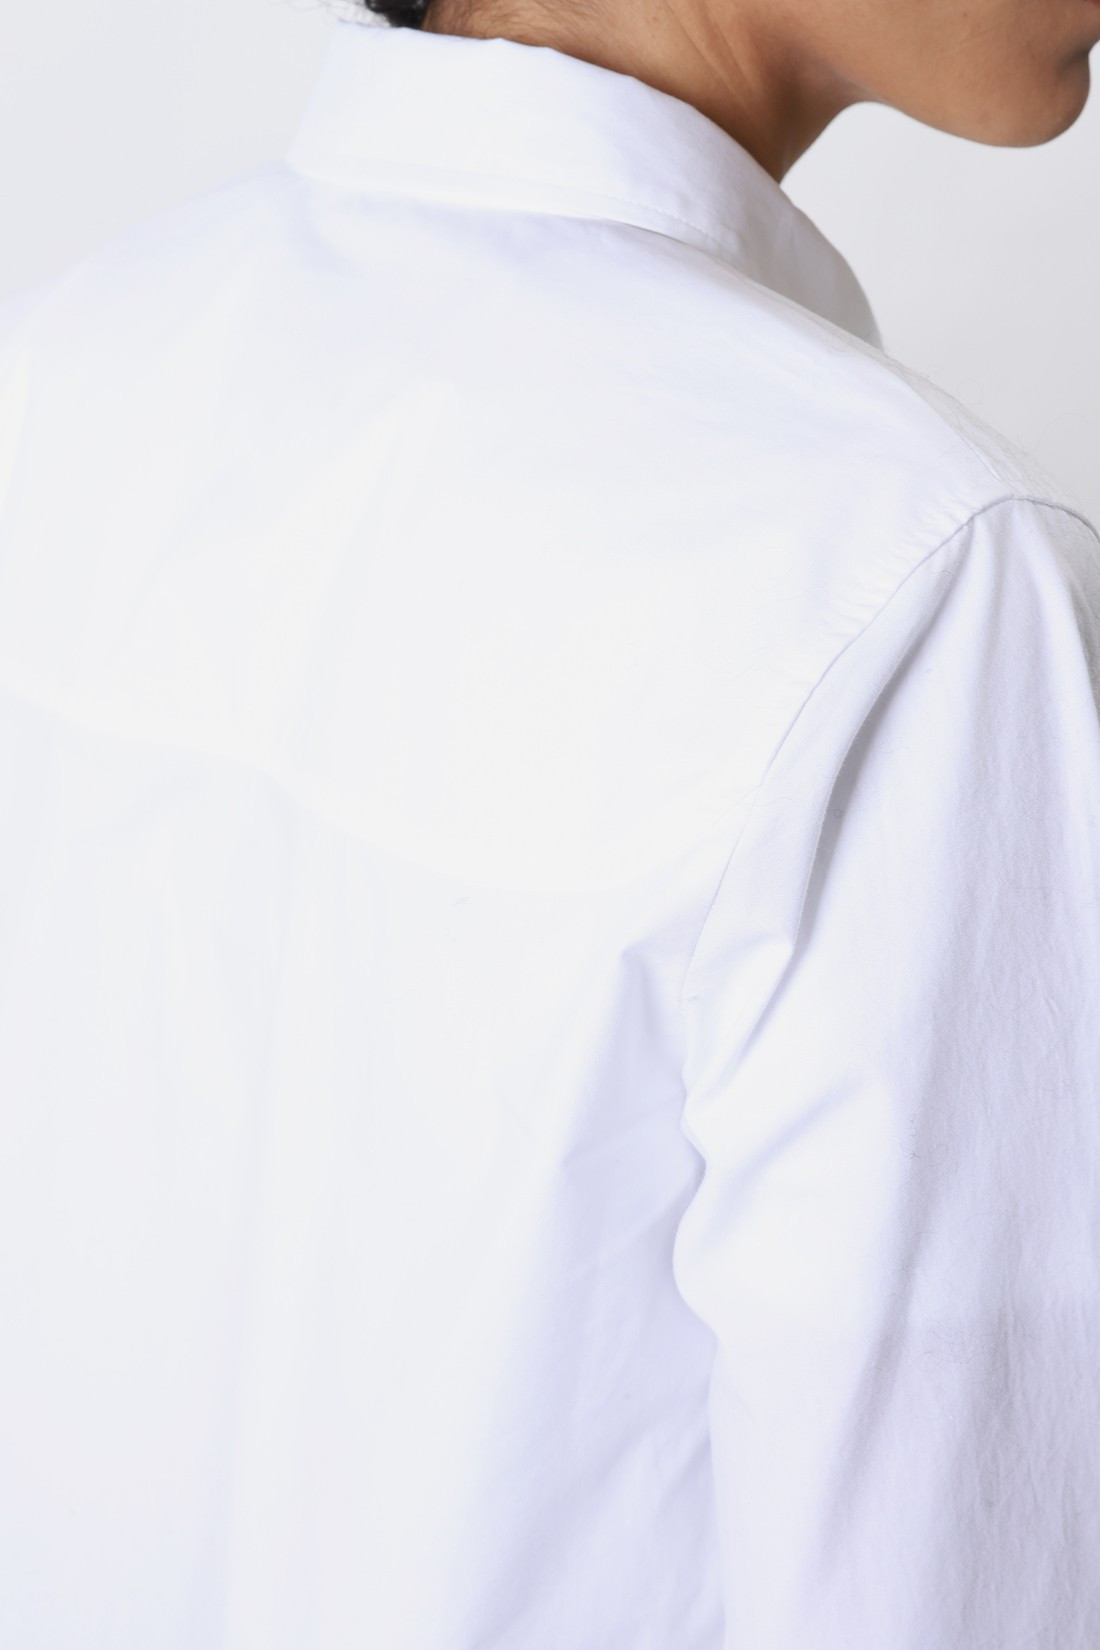 A.P.C. FOR WOMAN / Chemise pascale Blanc